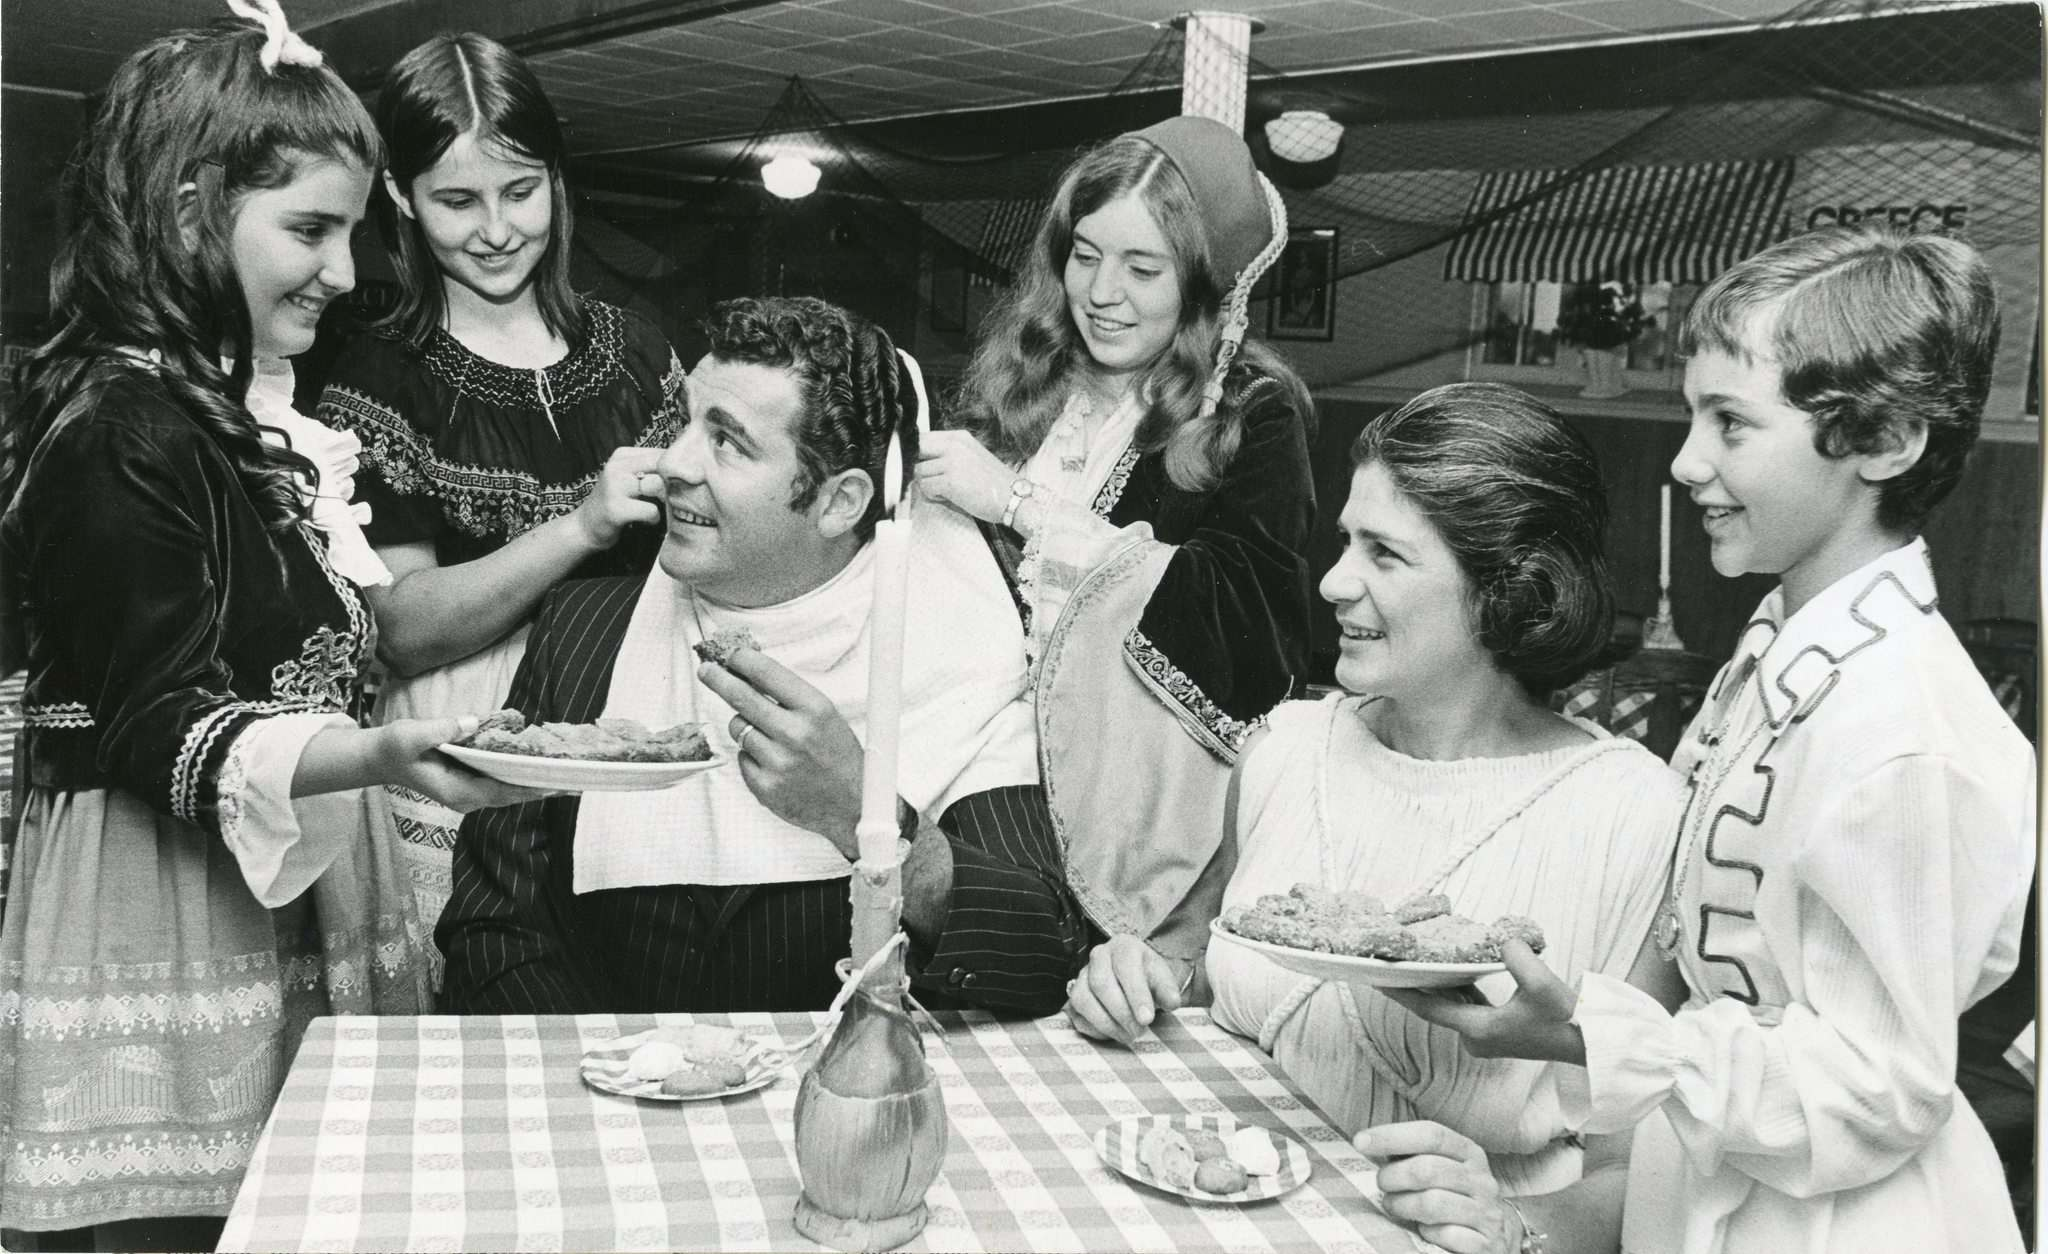 WINNIPEG FREE PRESS FILES</p><p>Honorary Greek consul Michael Mercury gets the royal treatment at the Greek pavilion at Folklorama in August 1971. Surrounding him are Anita Vardalos (from left), Mary Tsouras, Georgia Carabelas, Mary Kelekis and Athena Anadranistakis.</p></p>